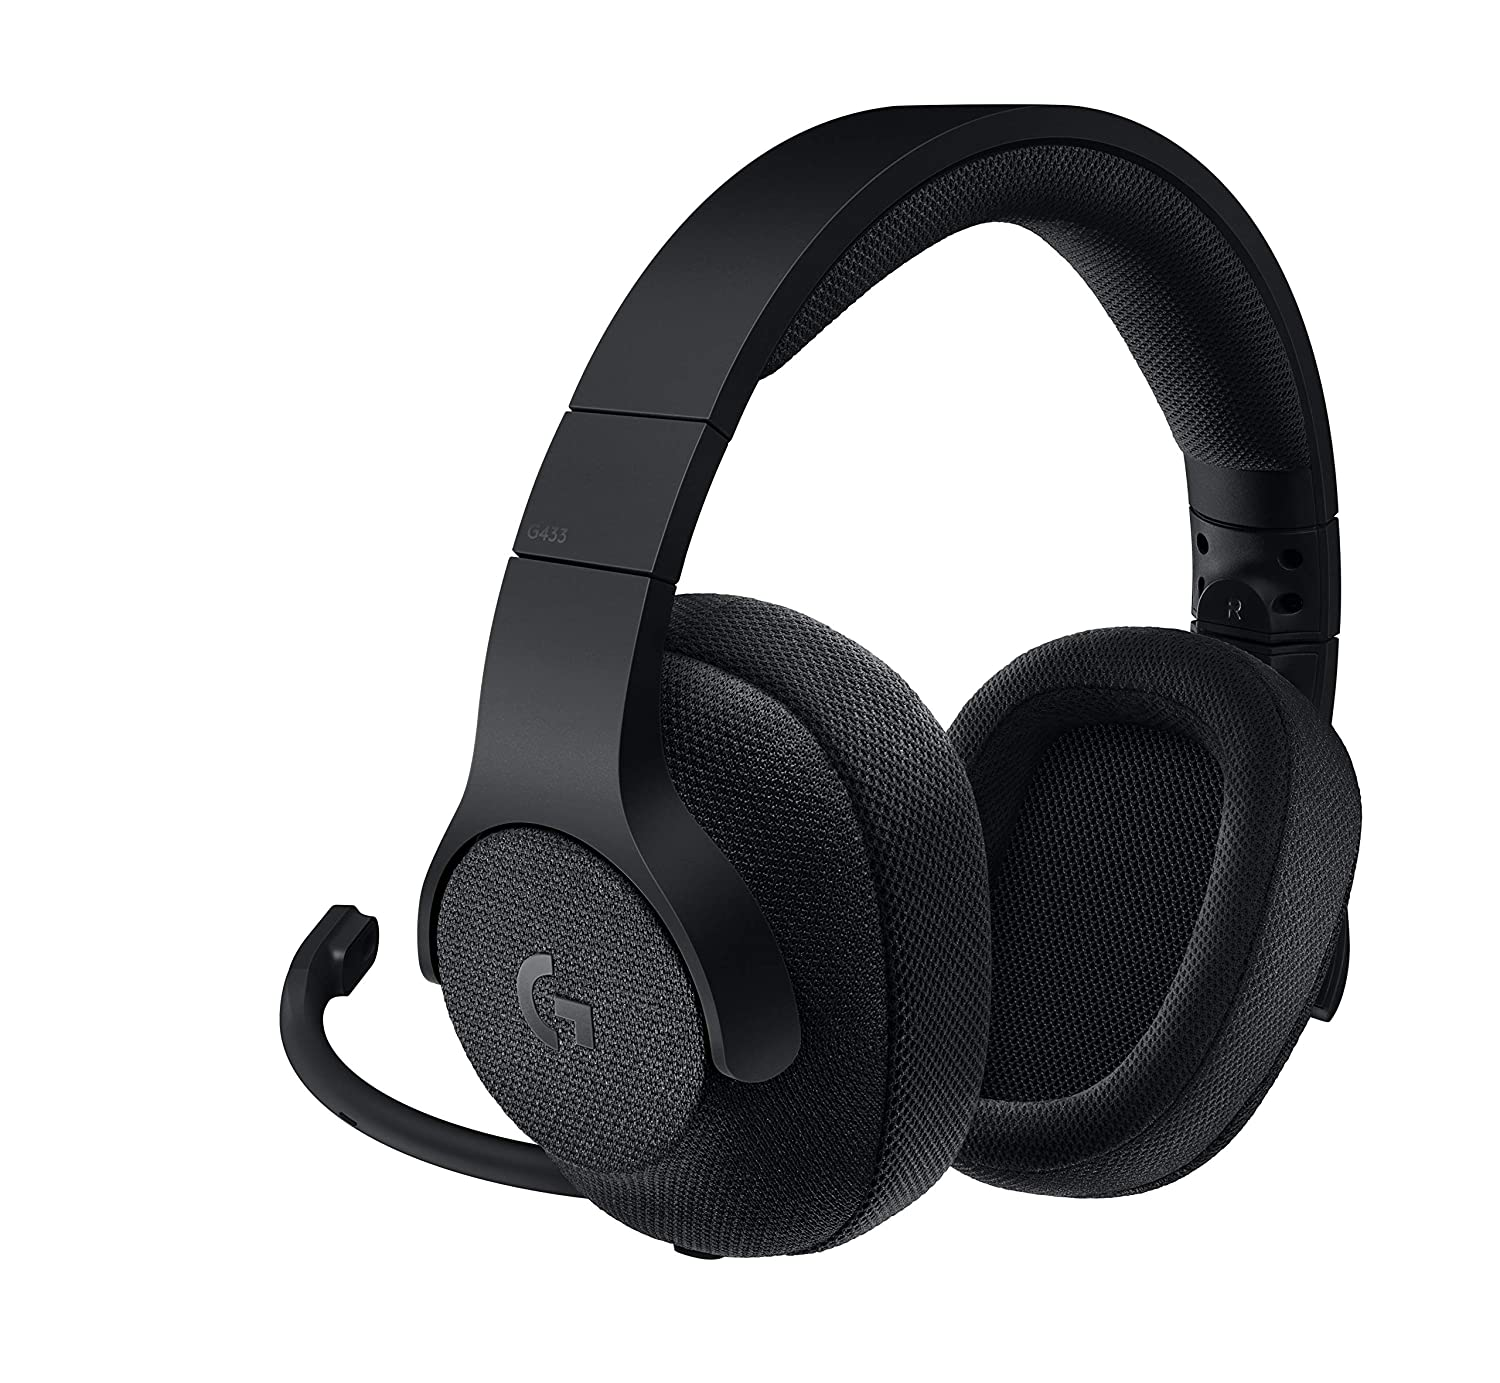 Auriculares Gaming Logitech G433 Para Pc, Ps4, Xbox One Xmp